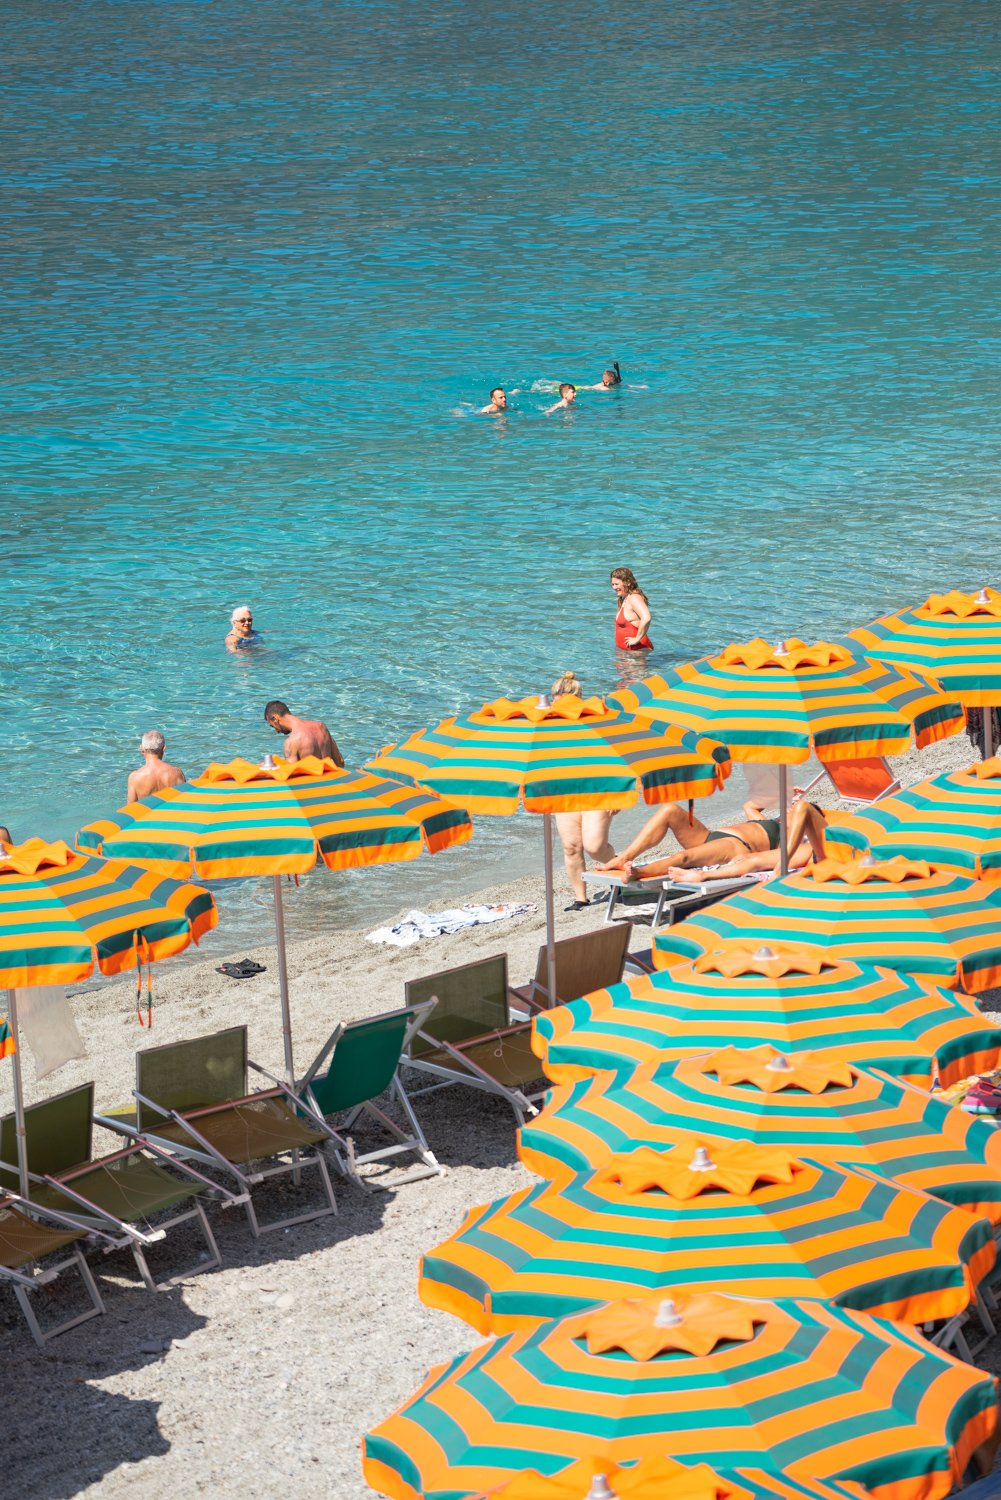 Orange umbrellas and people swimming in blue water on Monterosso beach